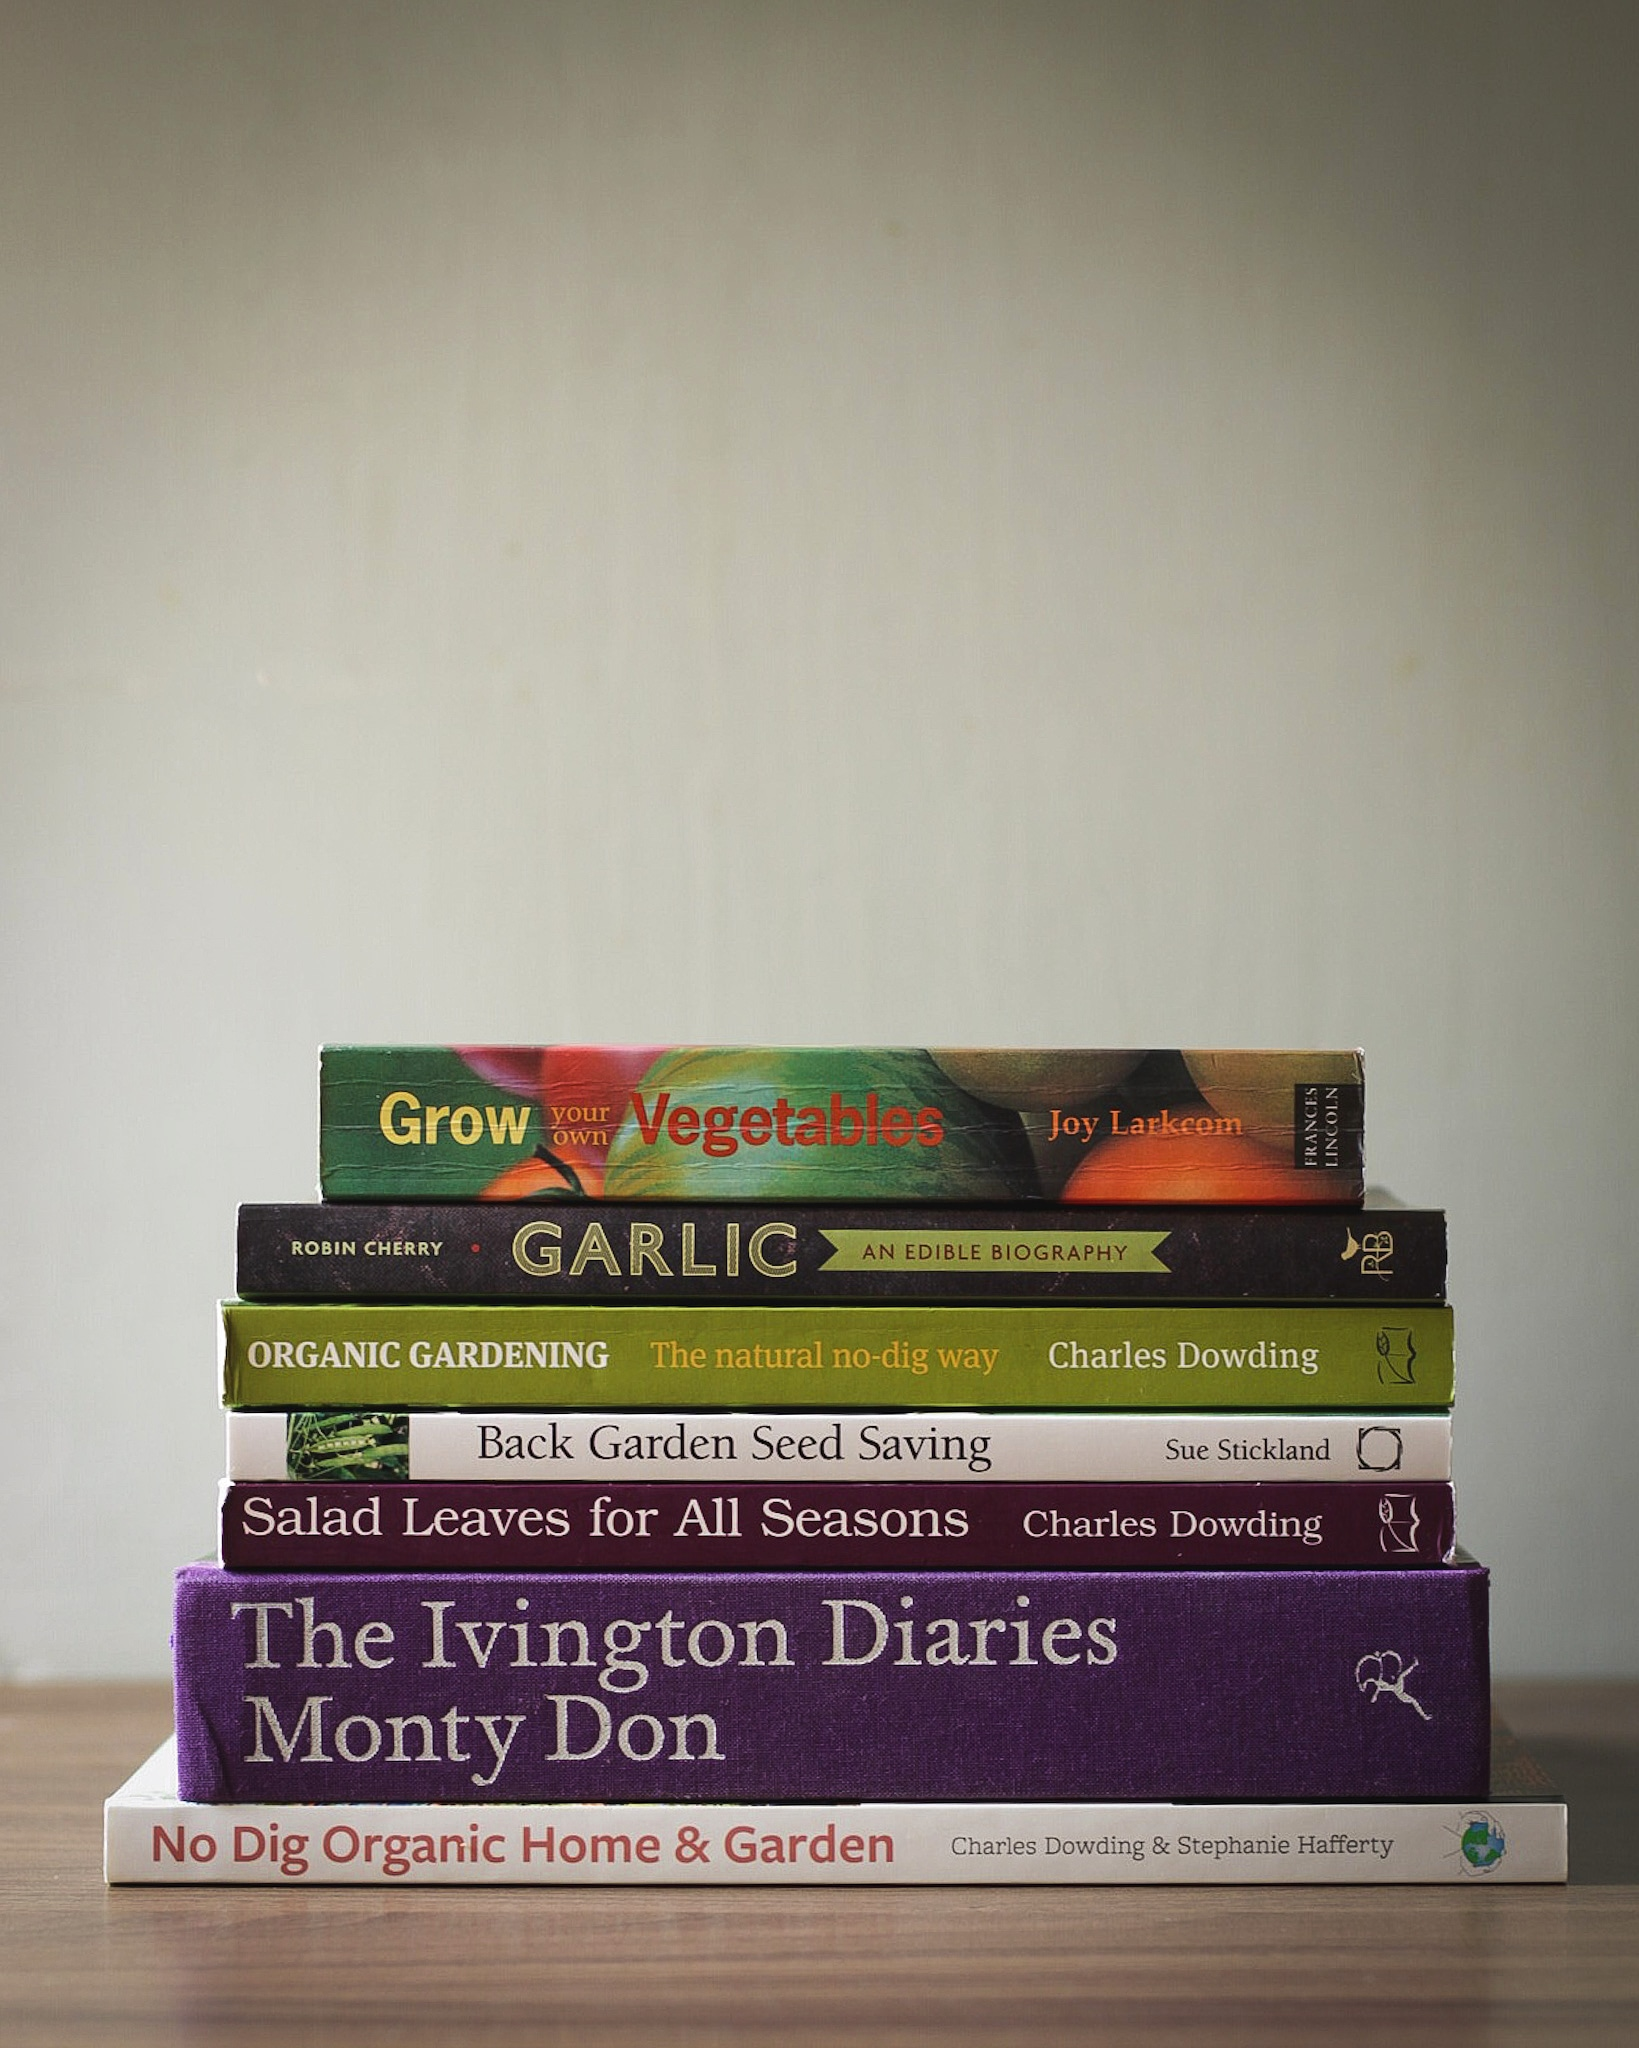 My favourite gardening books